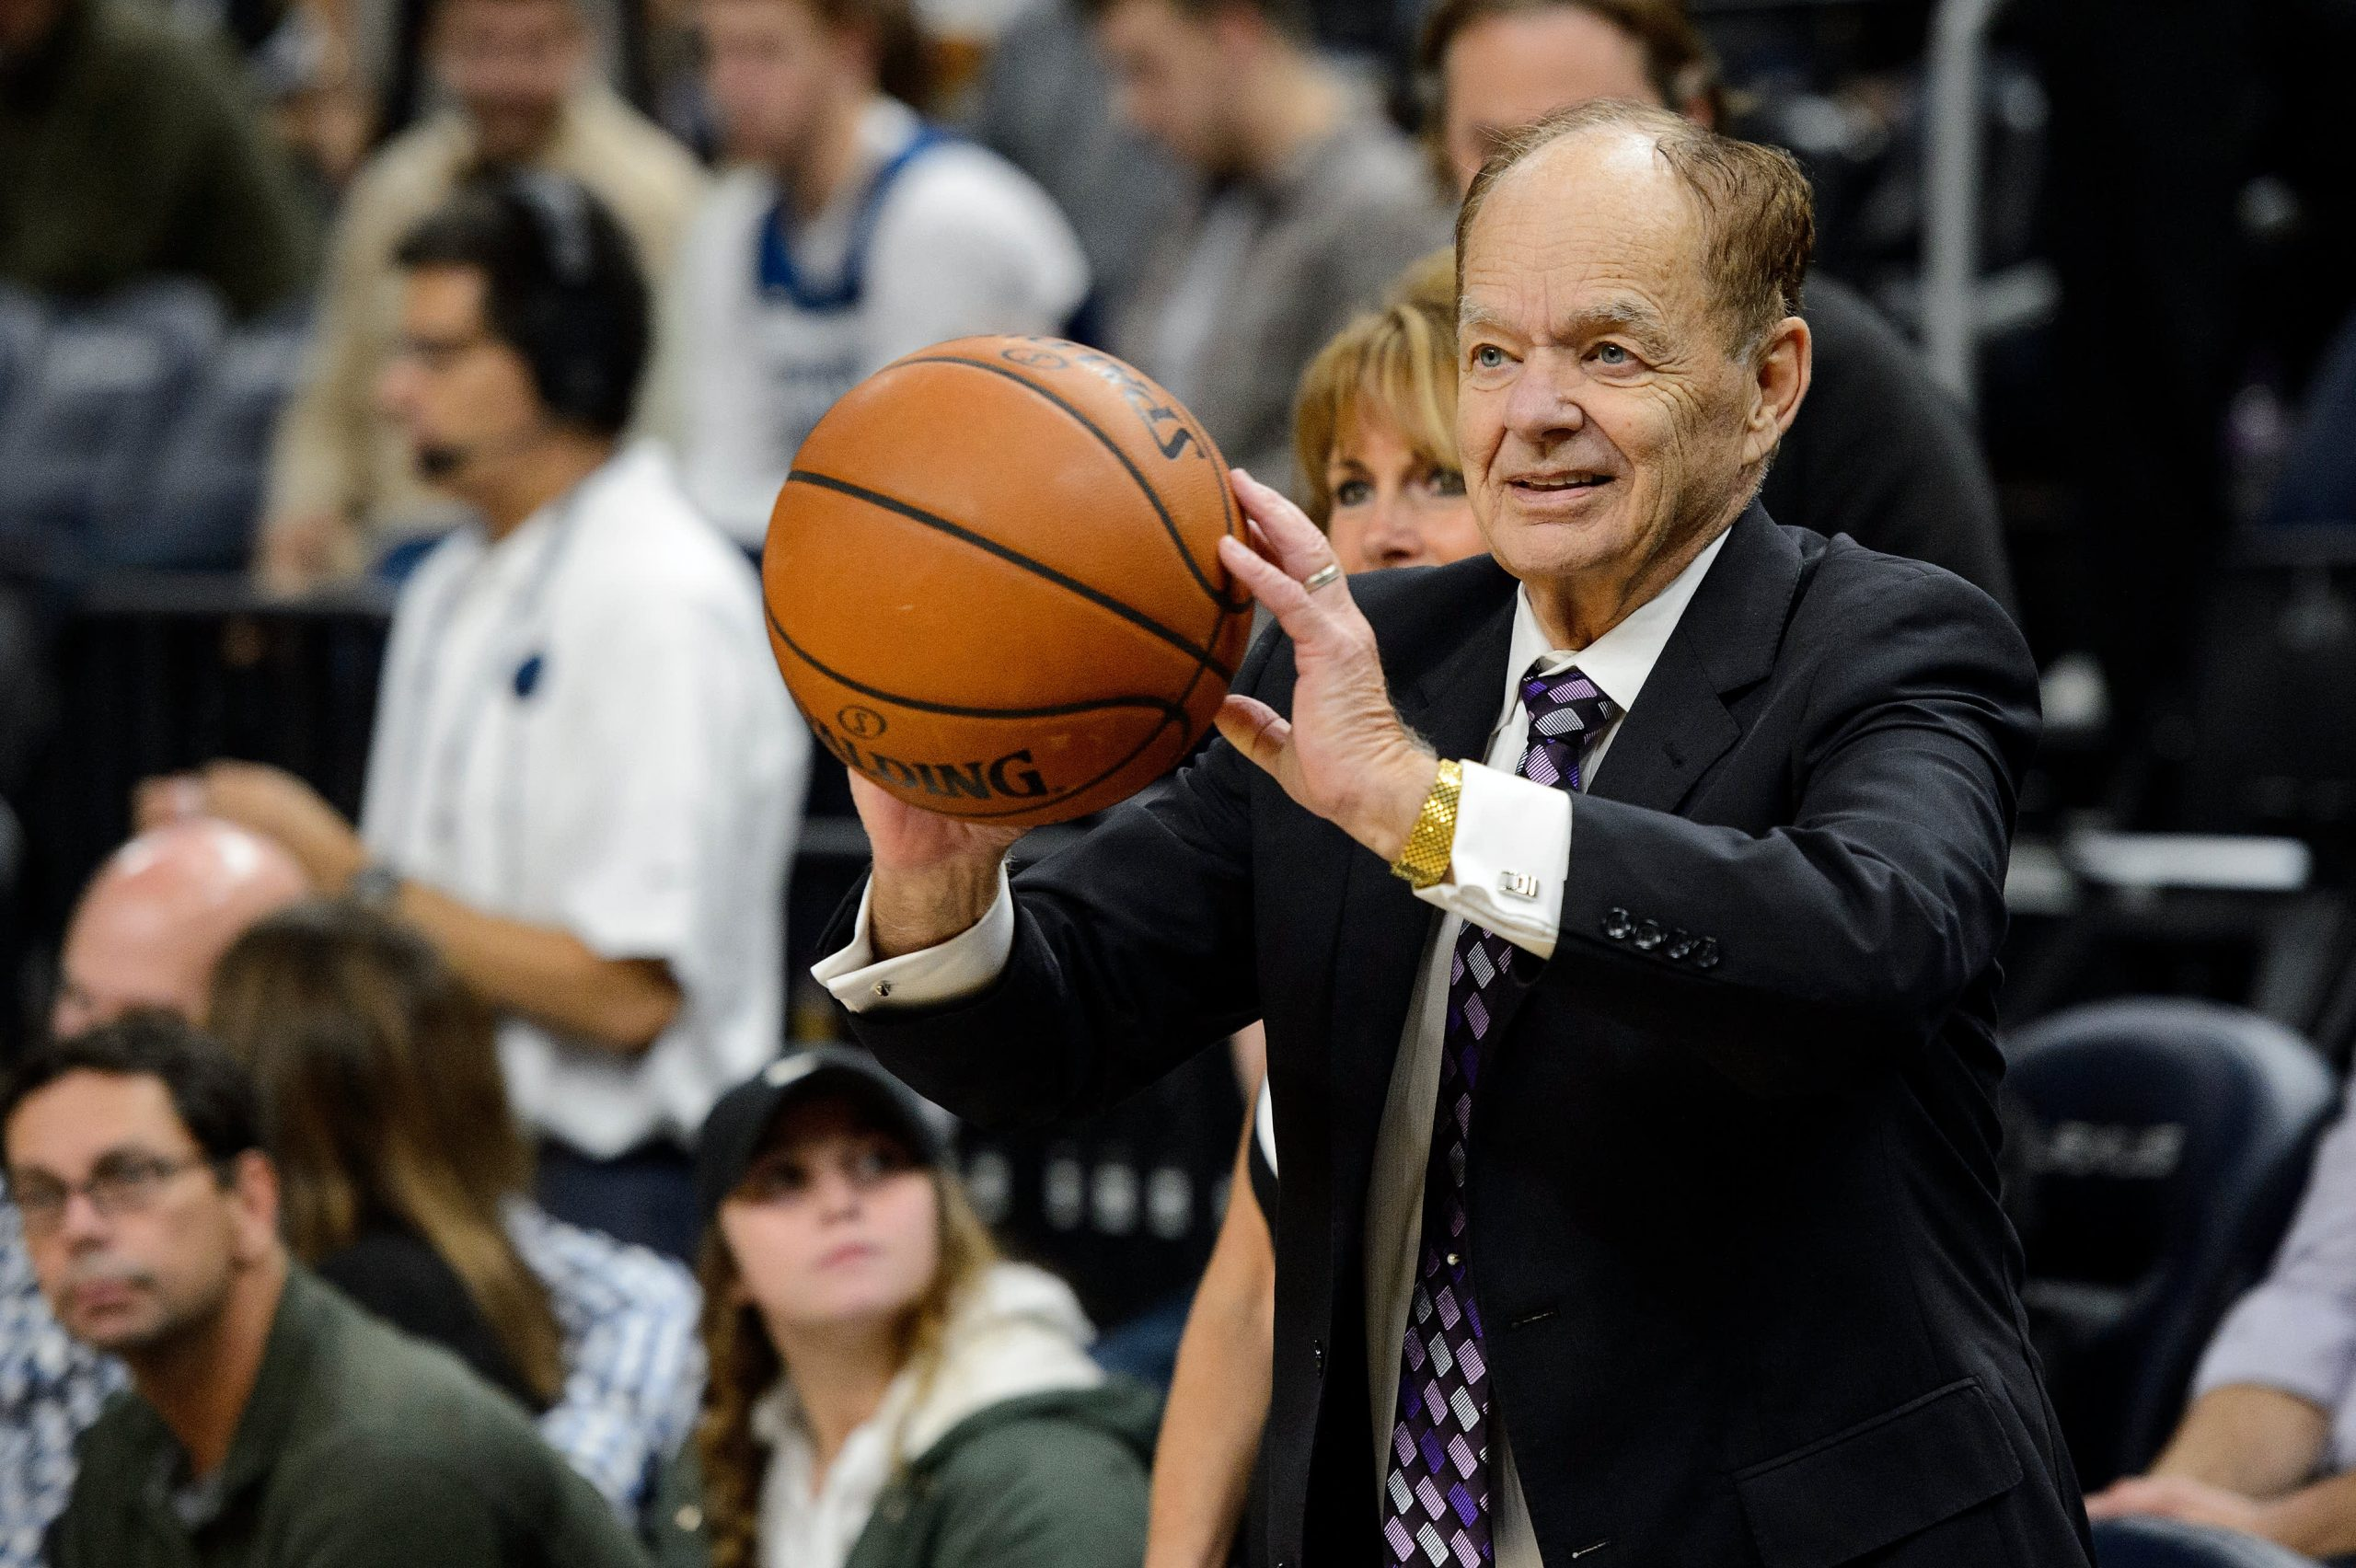 Minnesota Timberwolves could sell for over $1 billion, but they're saddled with leadership and image problems